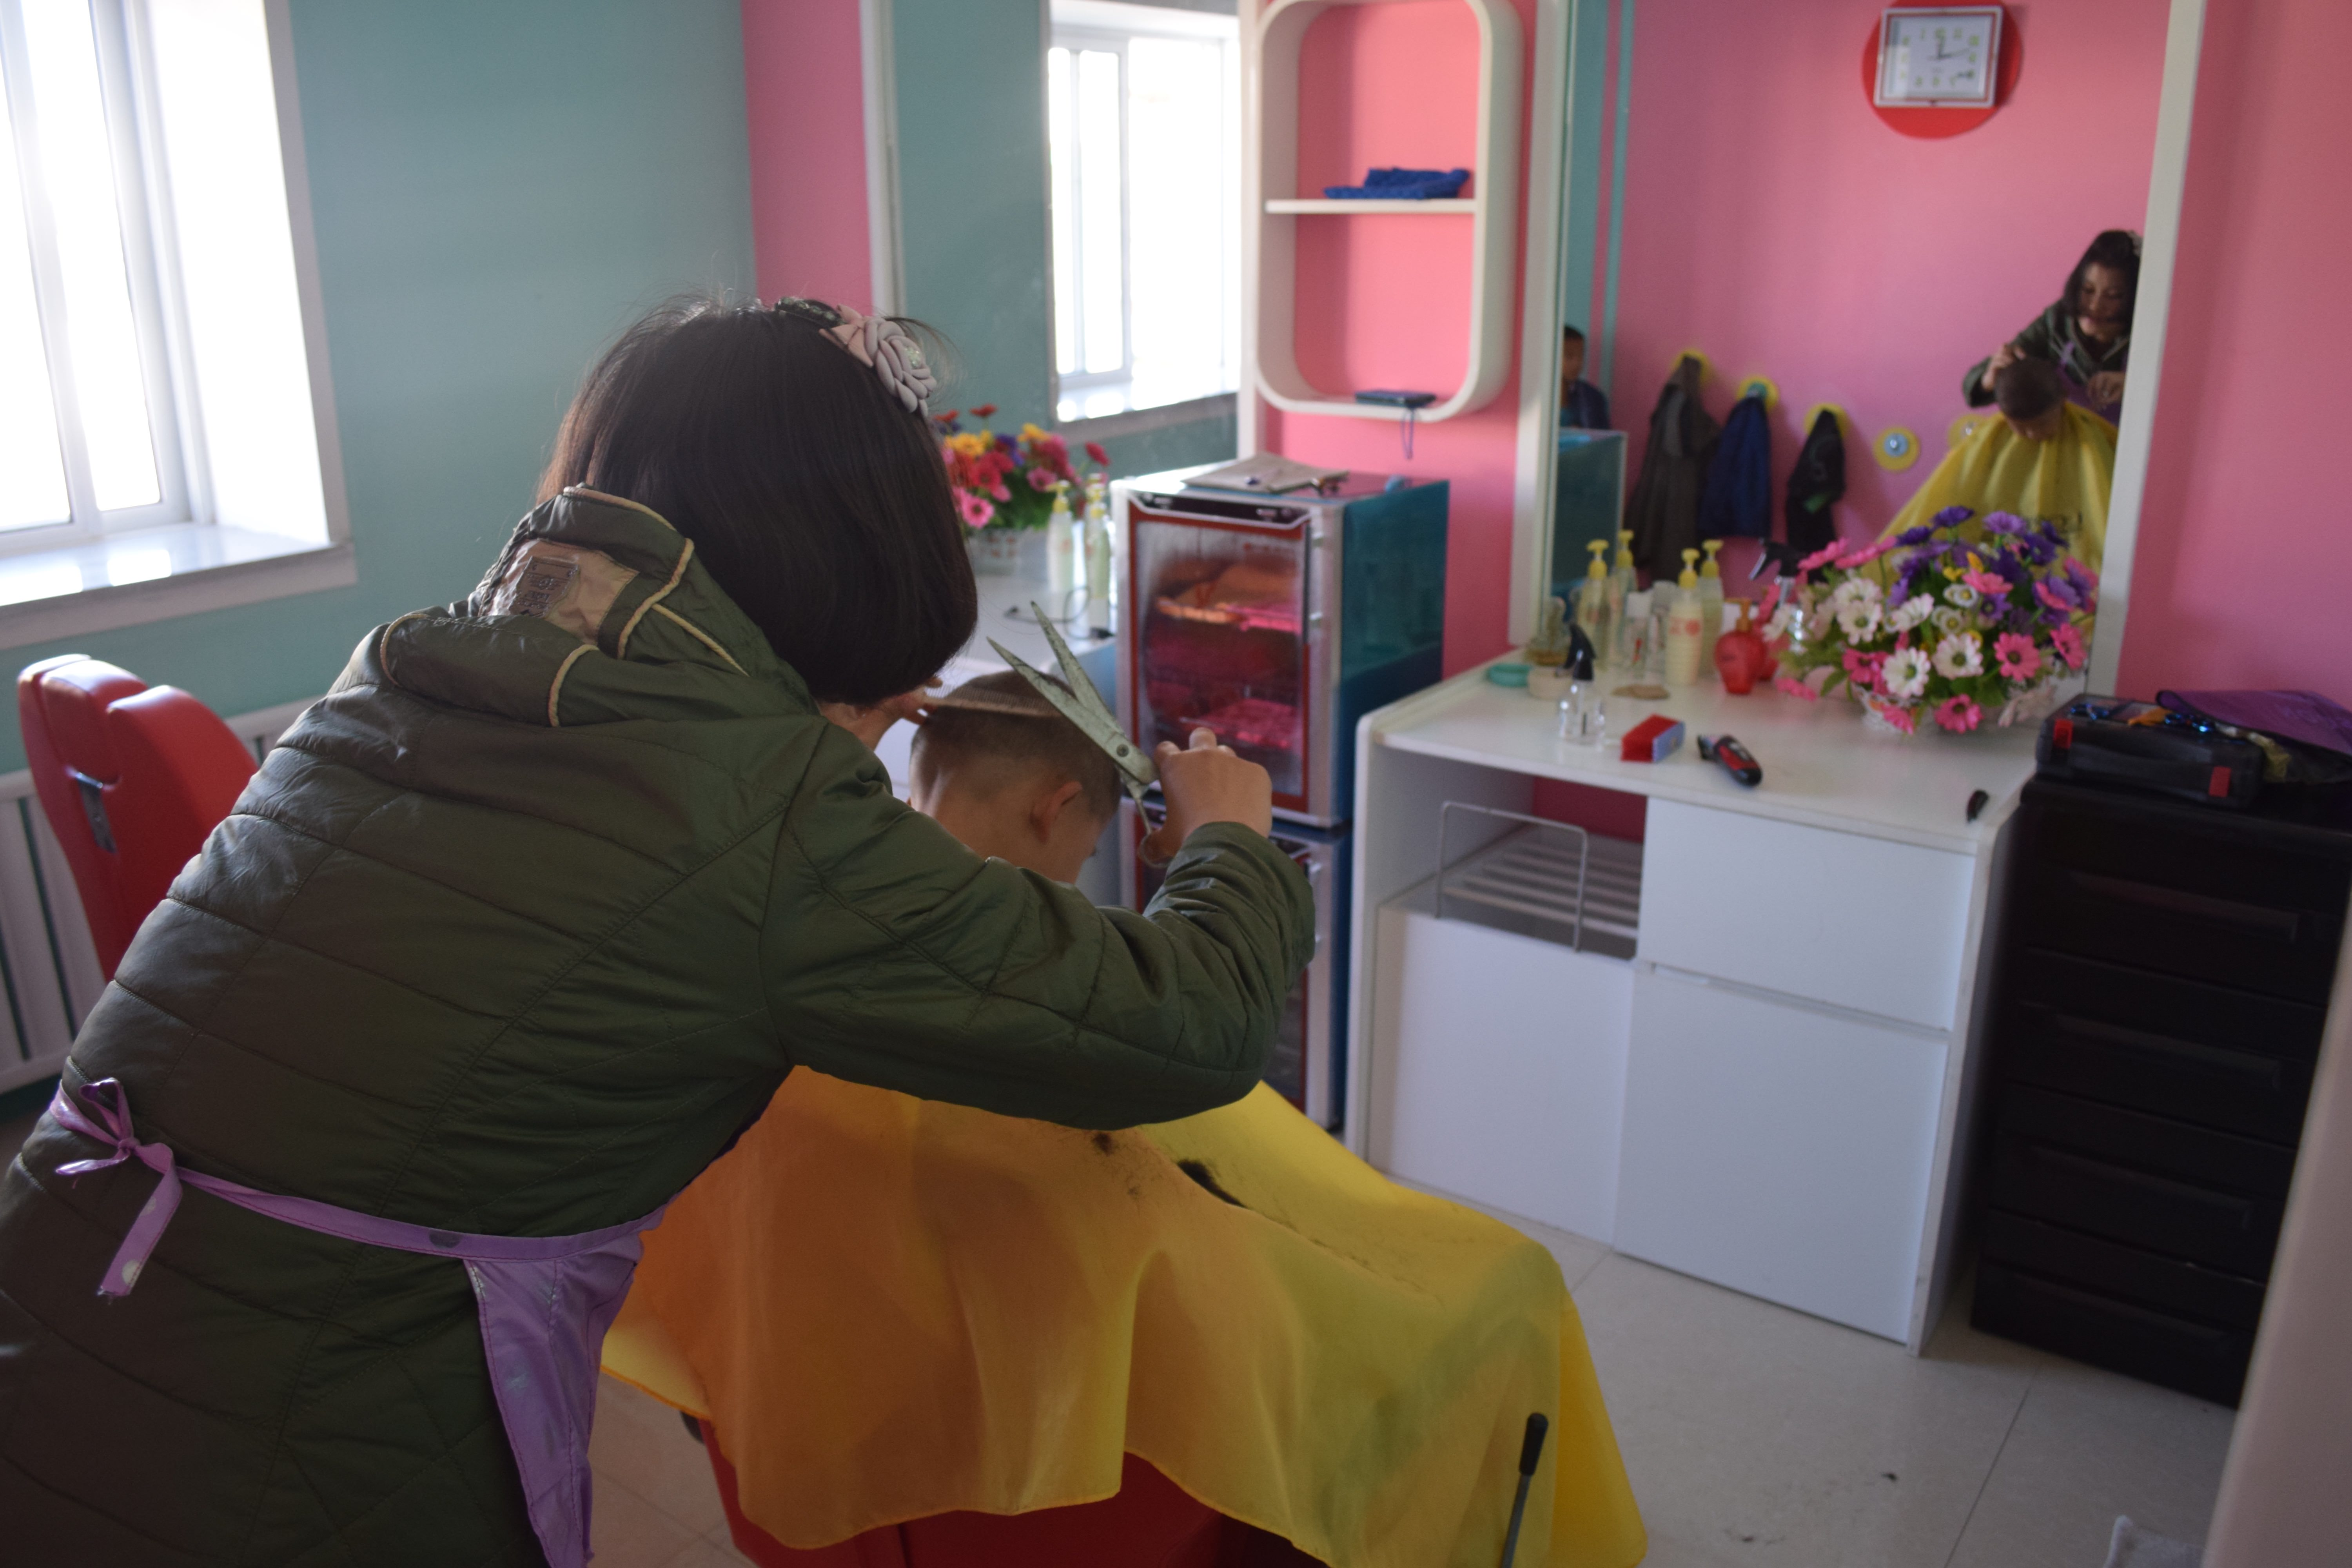 Orphanage in Nampo in North Korea. Trip arranged by KTG Tours